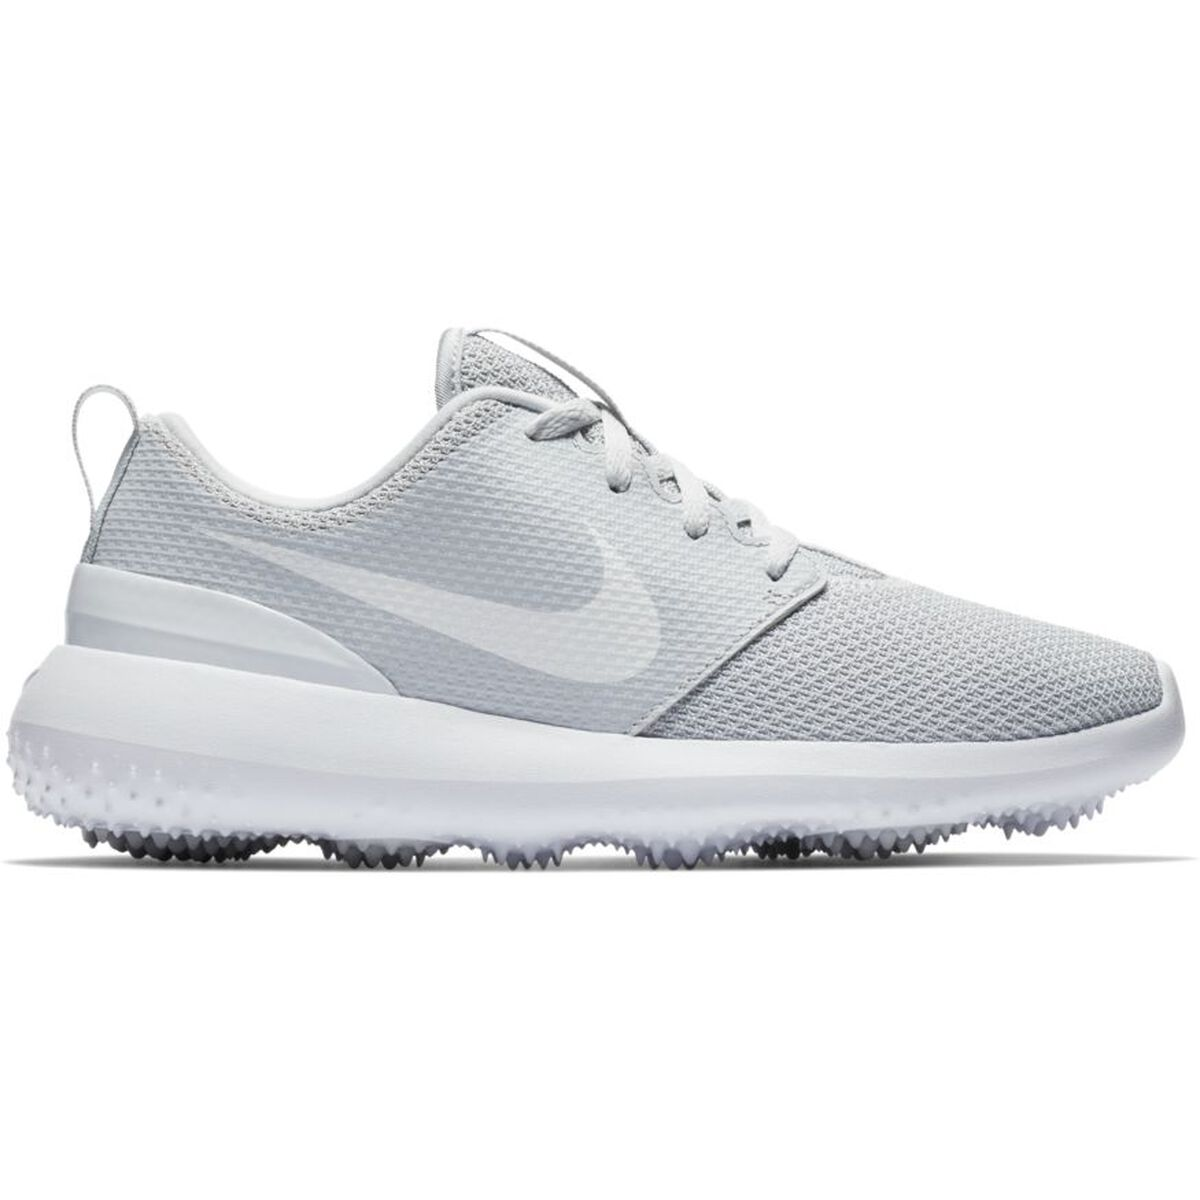 pretty nice 5c5f6 d0c1a Nike Roshe G Women  39 s Golf Shoe - Light Grey Zoom Image